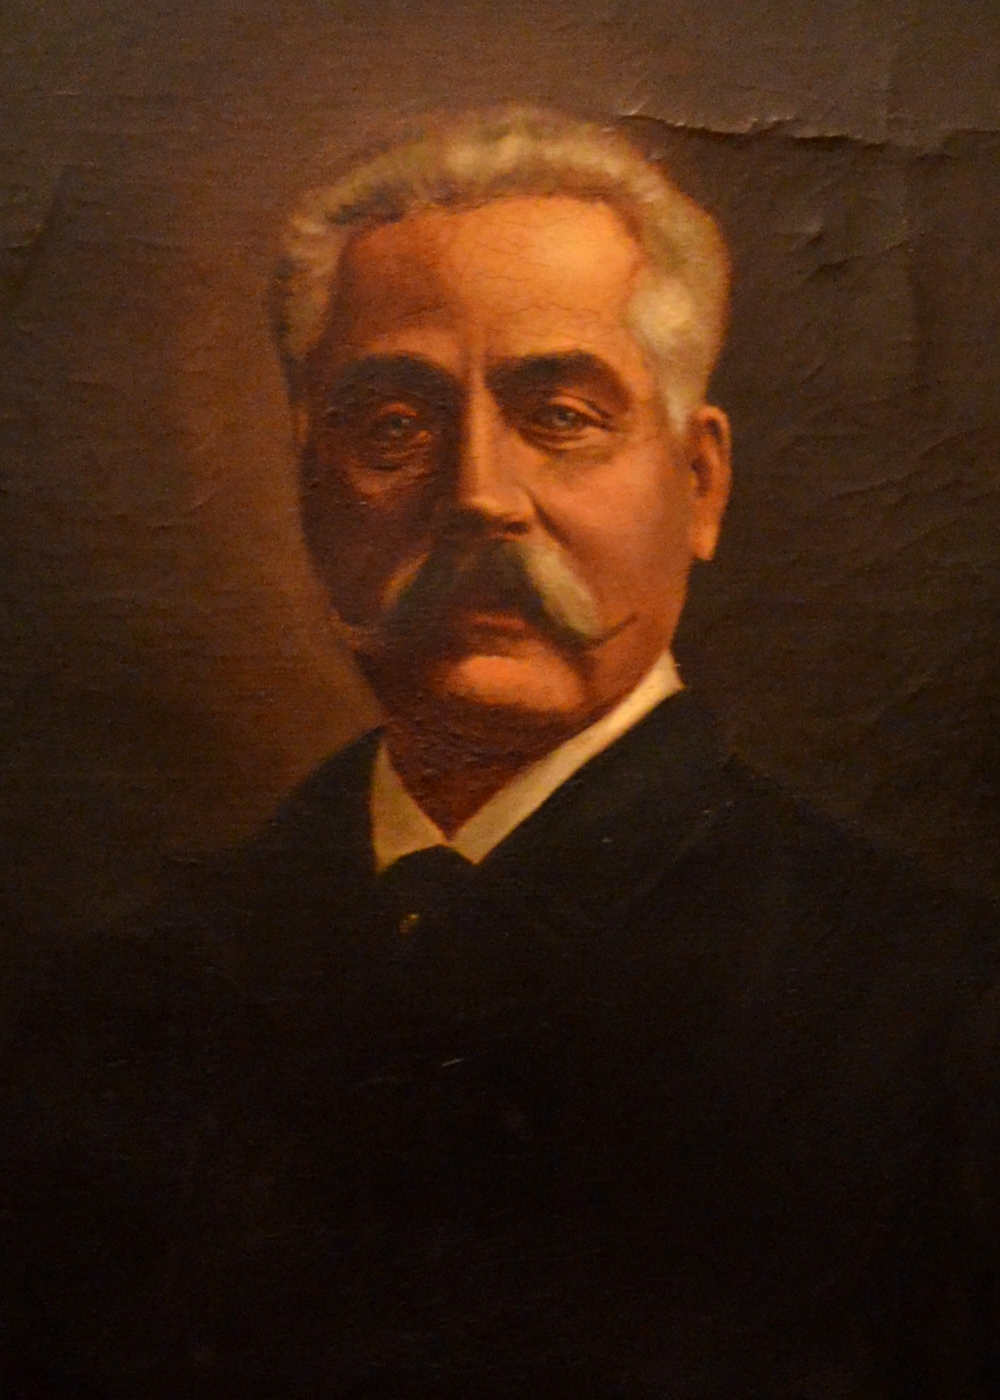 Portrait of Leopoldo Marenco